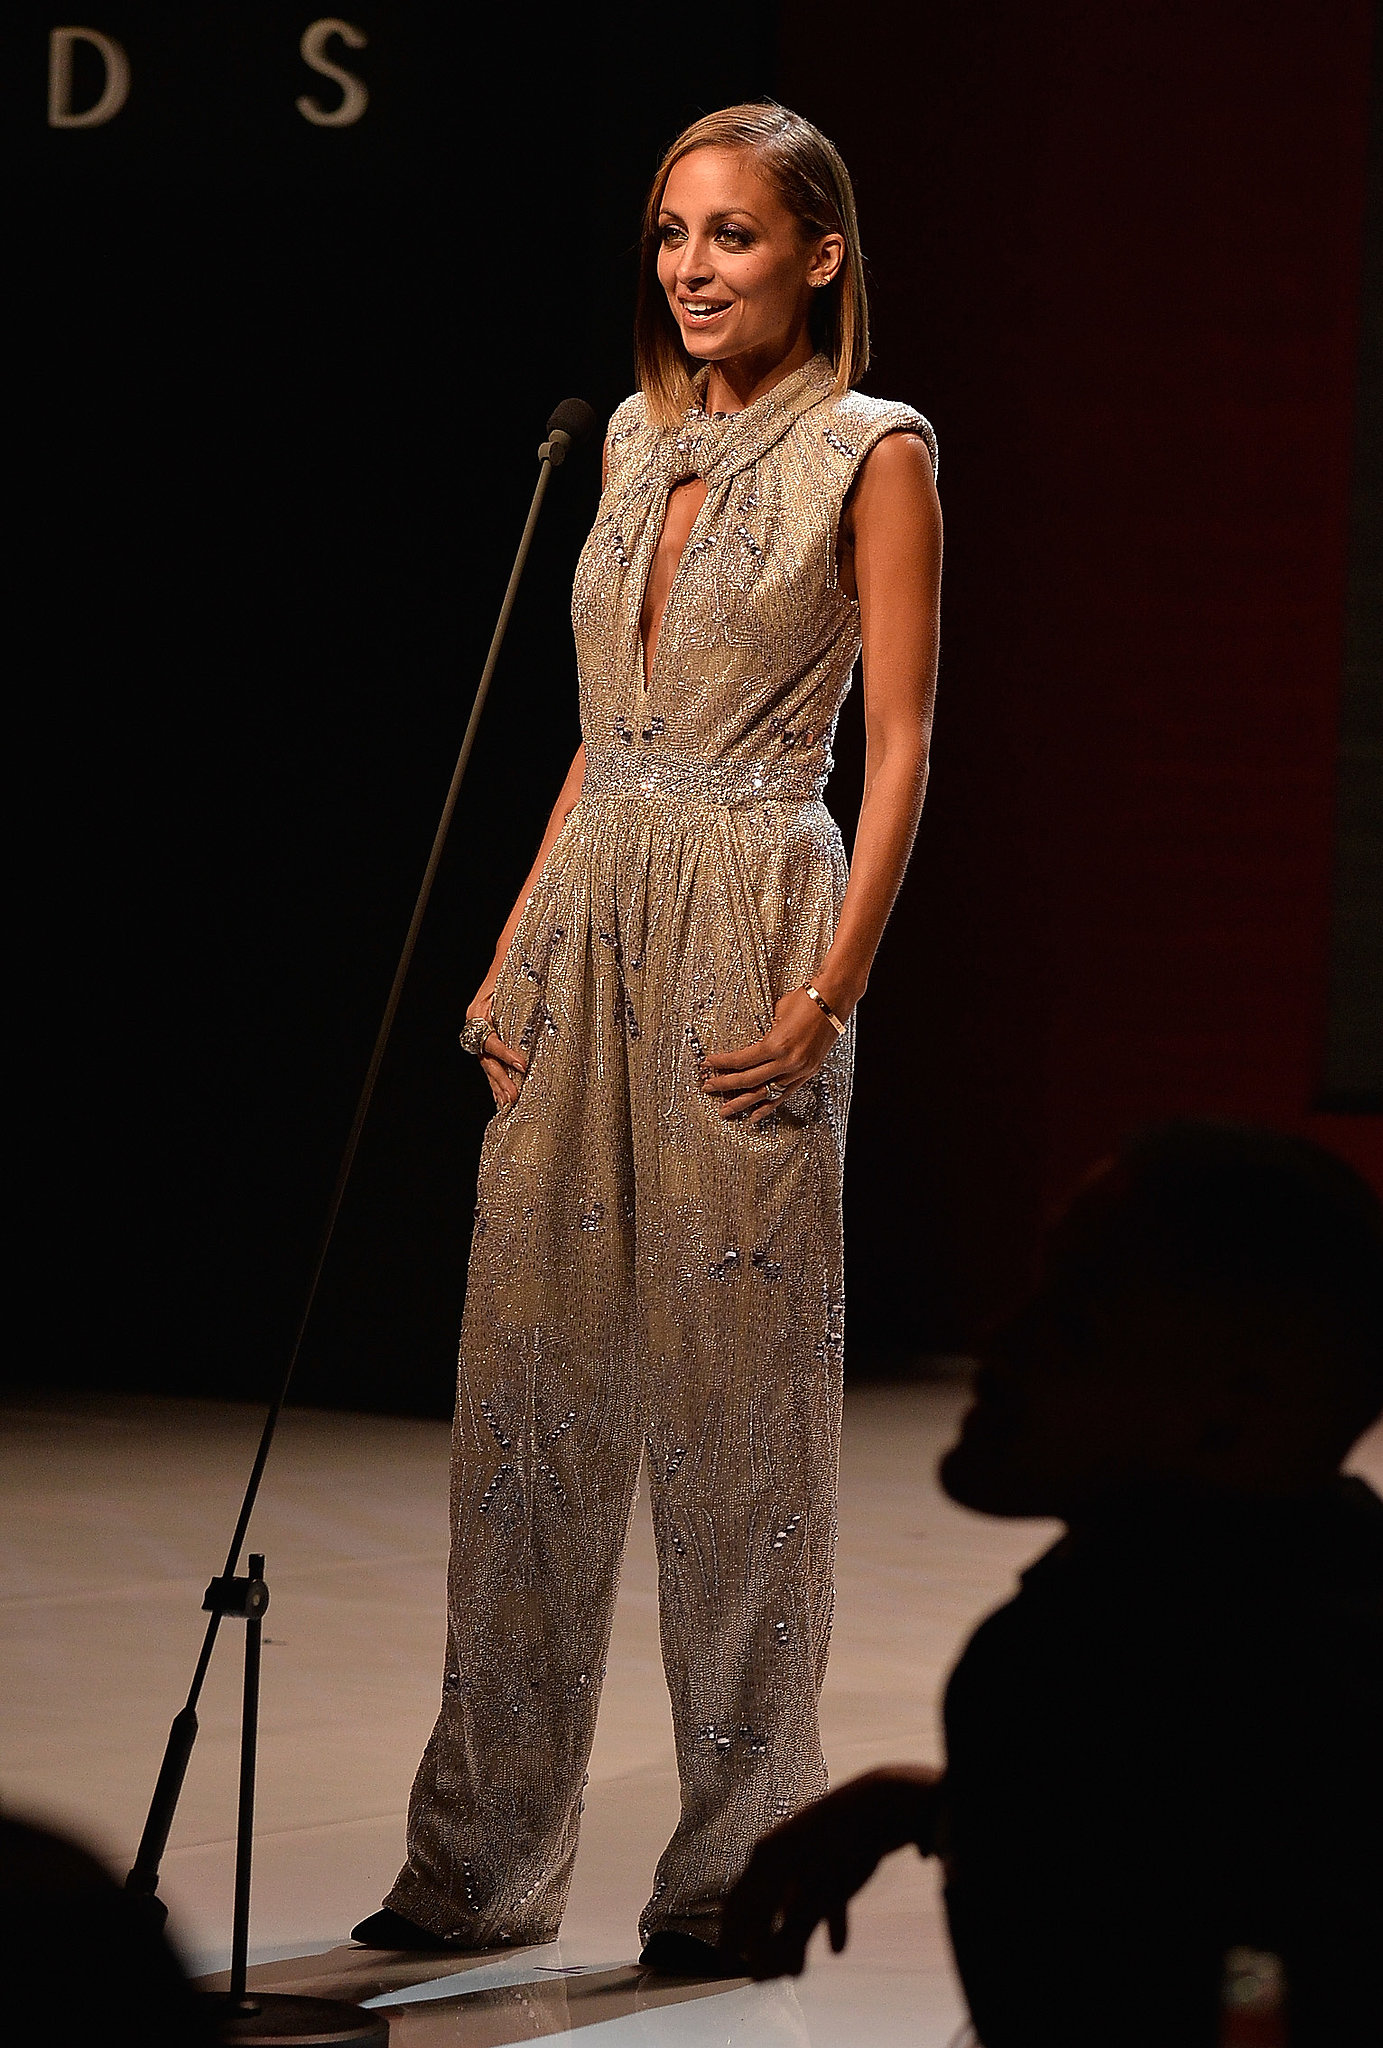 Nicole sported a sequin Giorgio Armani jumpsuit while hosting the Style Awards in NYC in September 2013.